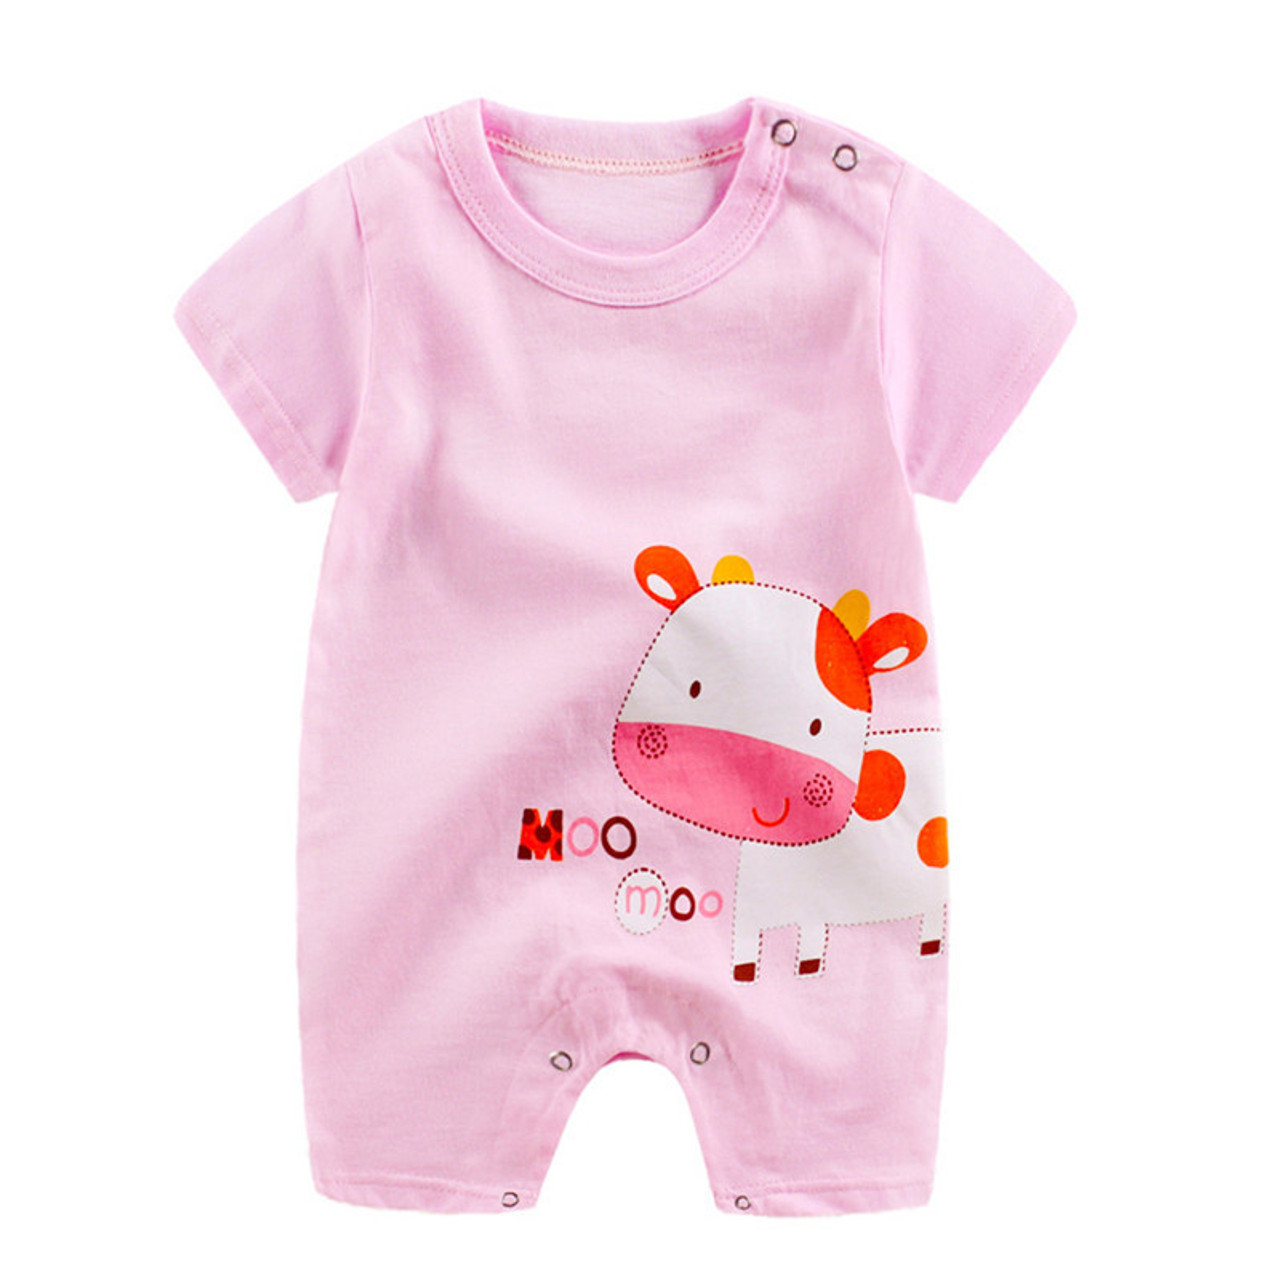 b30b55094d61 ... 2018 New baby rompers Newborn Infant Baby Boy Girl Summer clothes Cute  Cartoon Printed Romper Jumpsuit ...